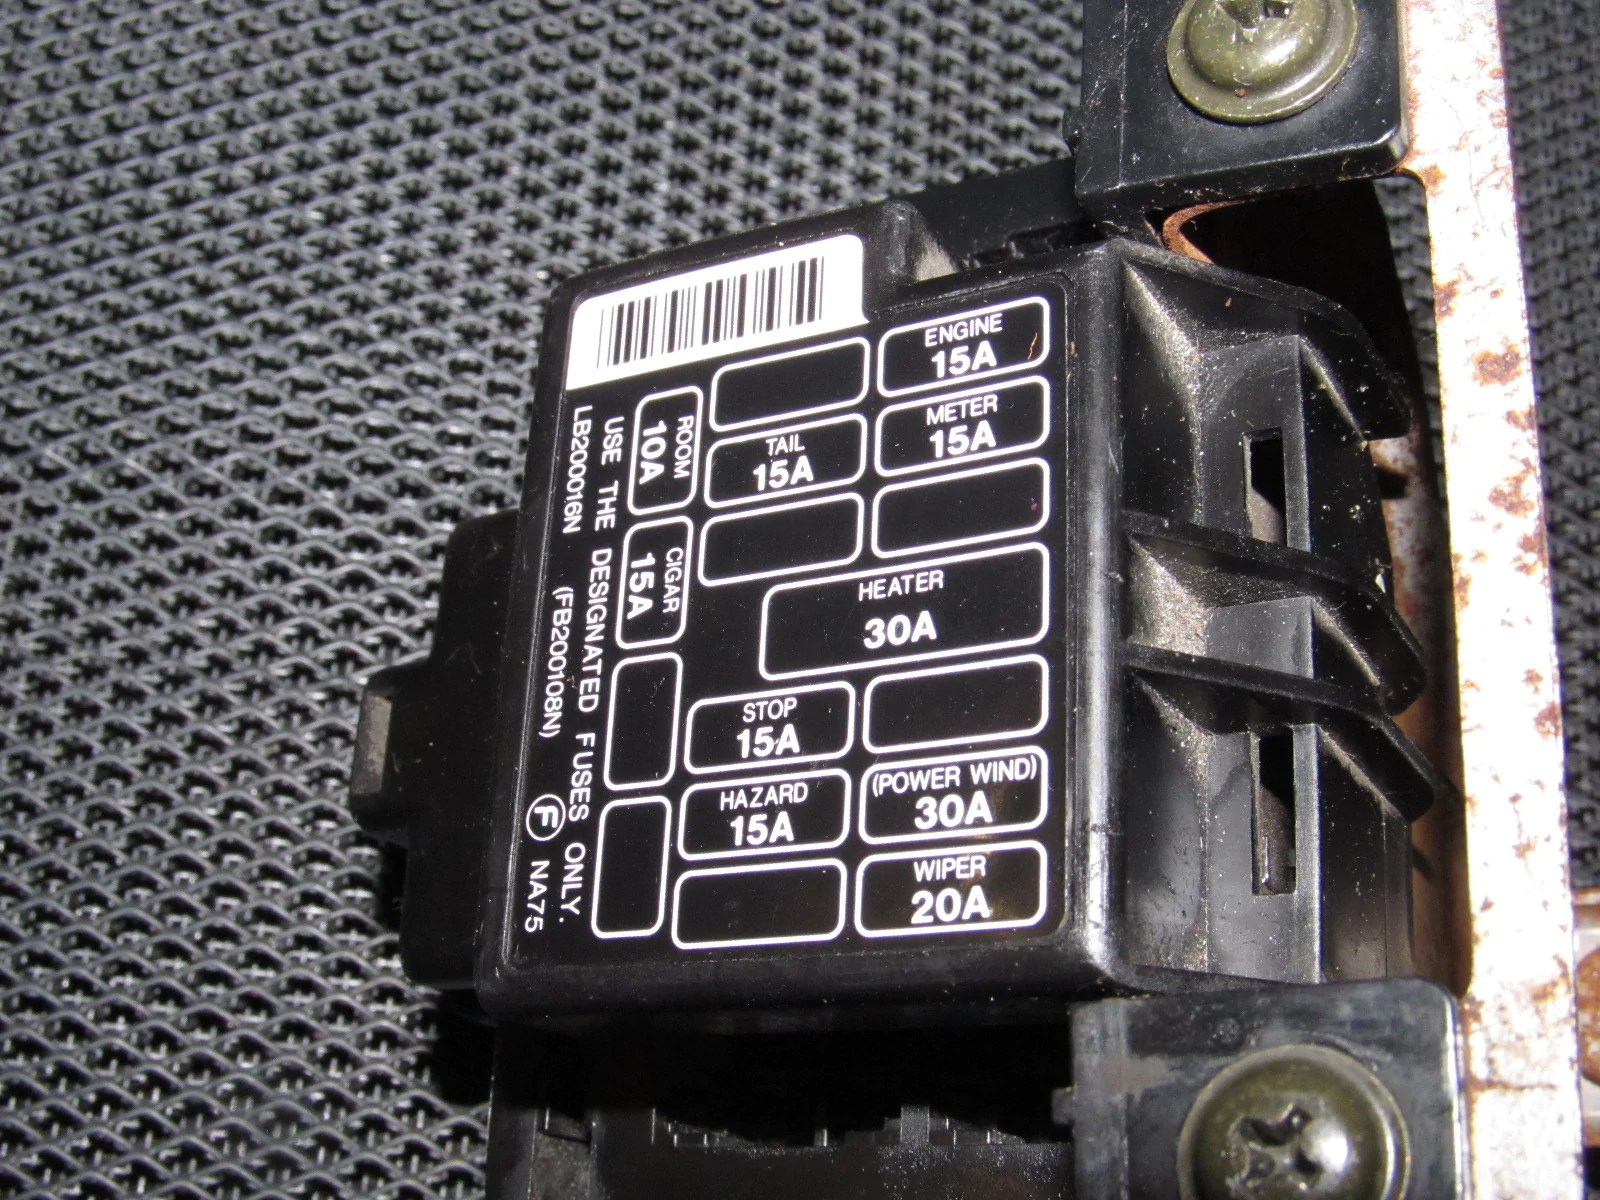 miata fuse box electrical wiring diagram94 95 96 97 mazda miata oem interior fuse box  [ 1600 x 1200 Pixel ]